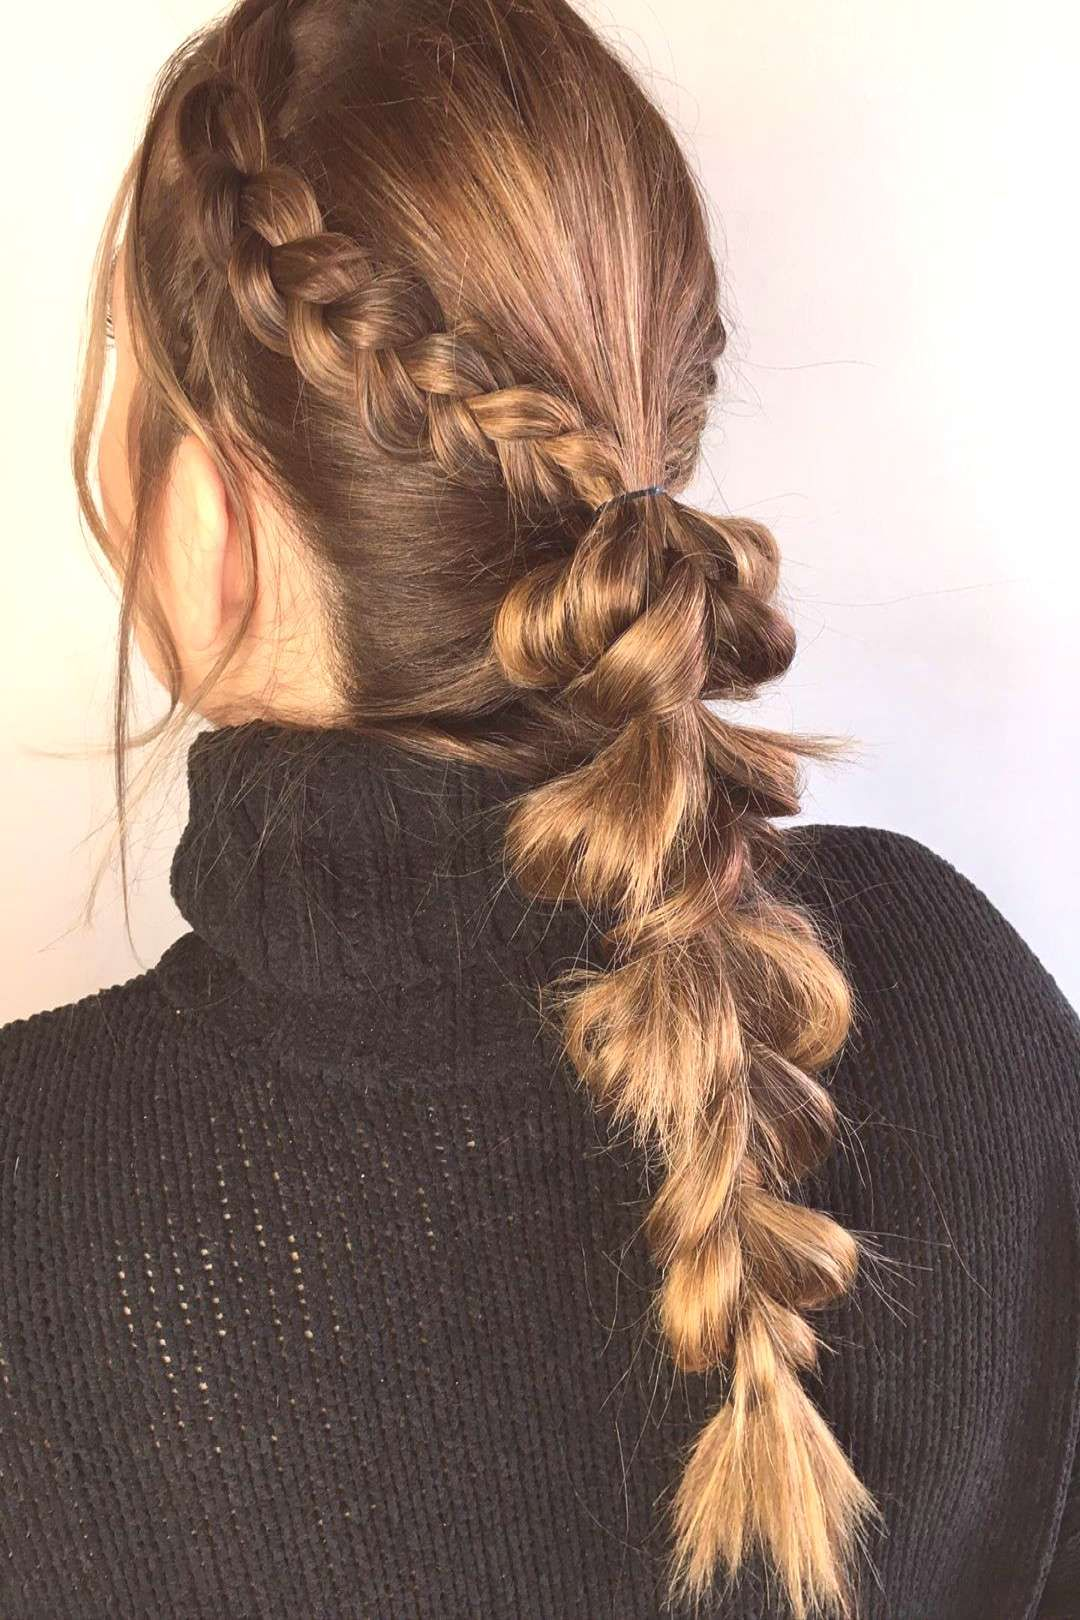 Quick 10 minute style for this lovely lady #hairstyles #braids #u